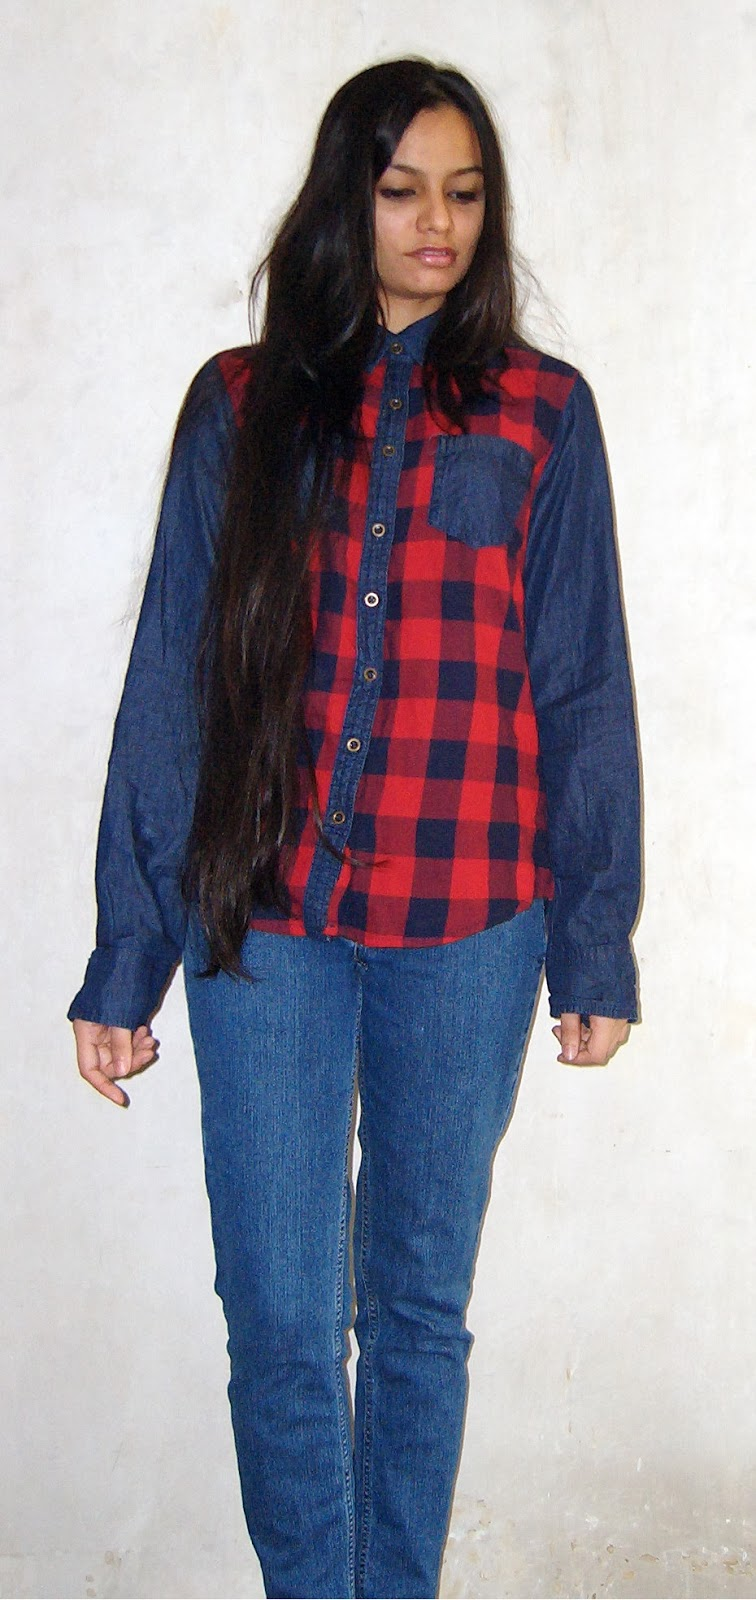 denim shirt, how to wear a denim shirt, tartan shirt, how to wear denim and tartan, long hair, indian fashion blogger